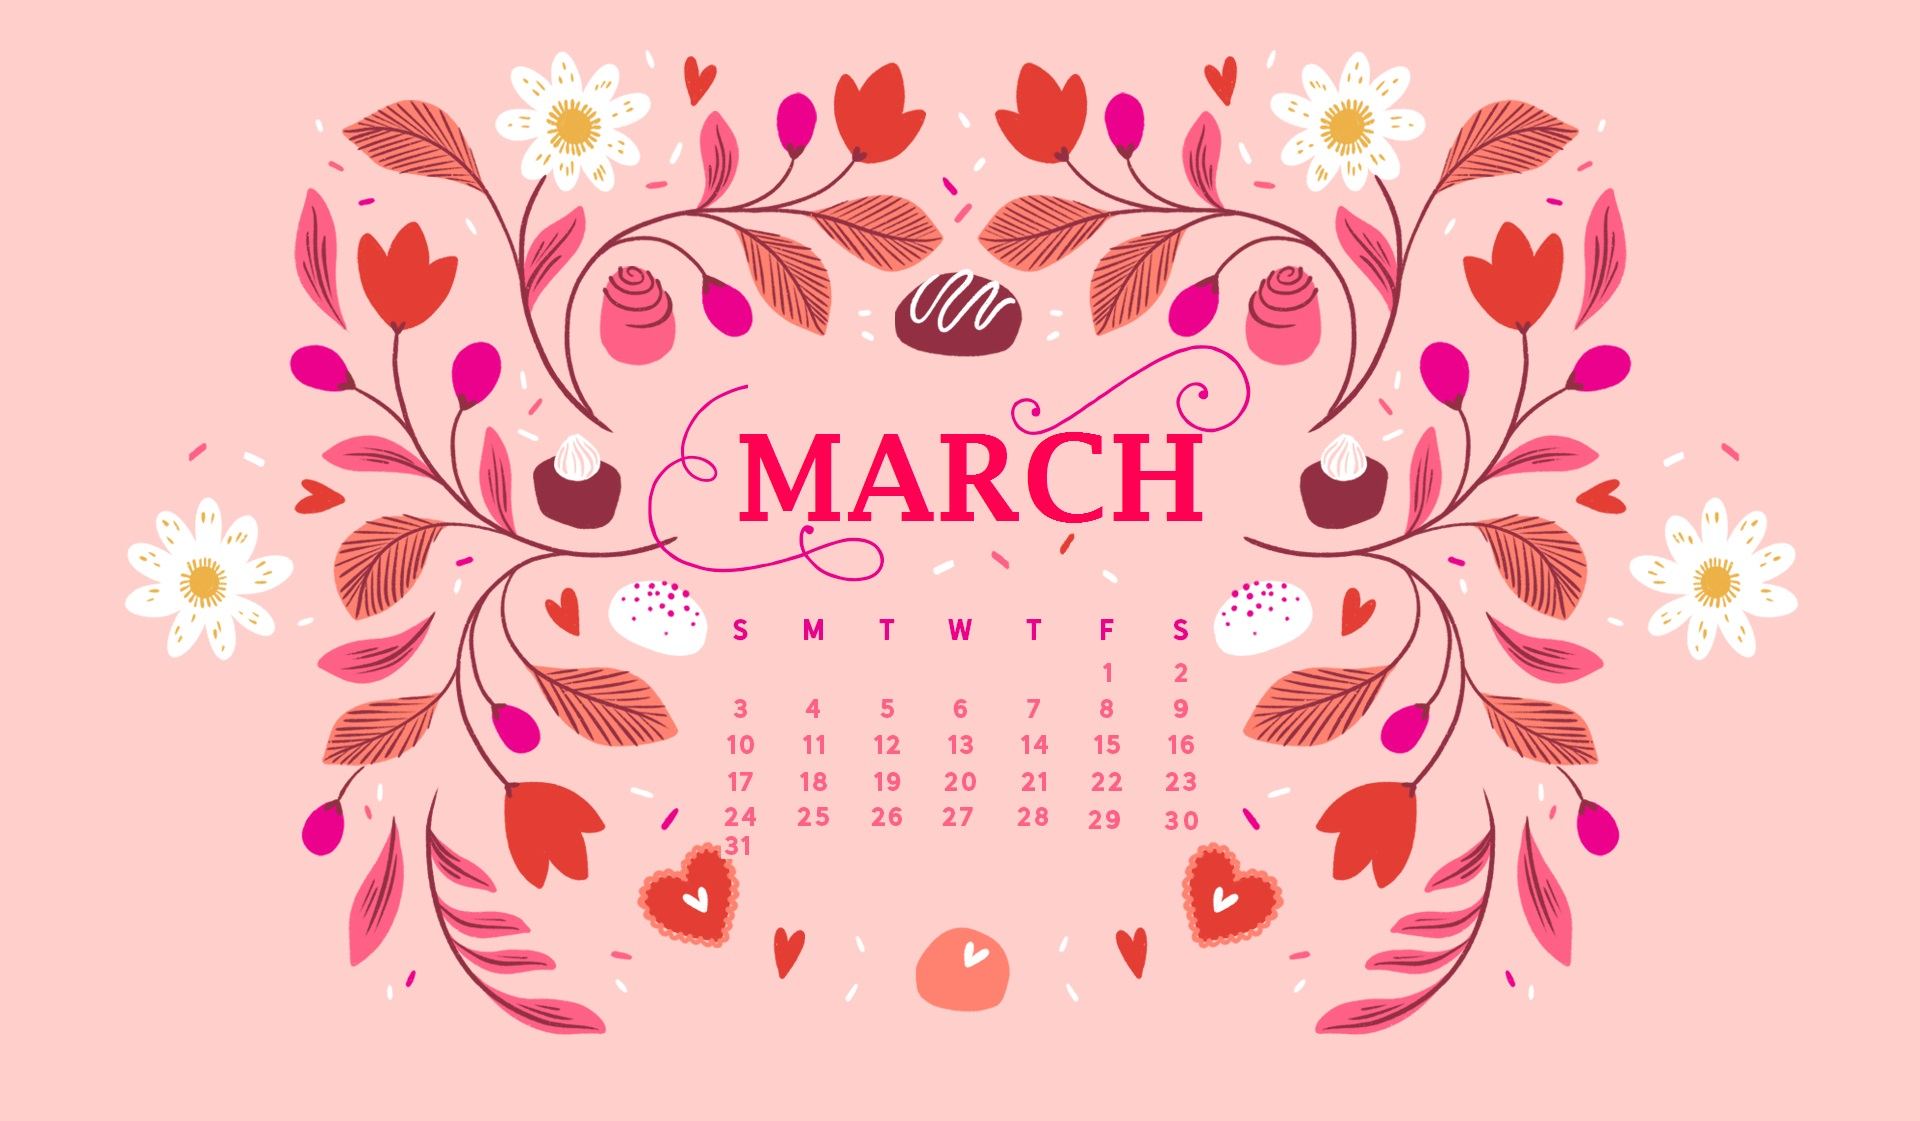 March 2019 Cute Calendar With Wallpaper